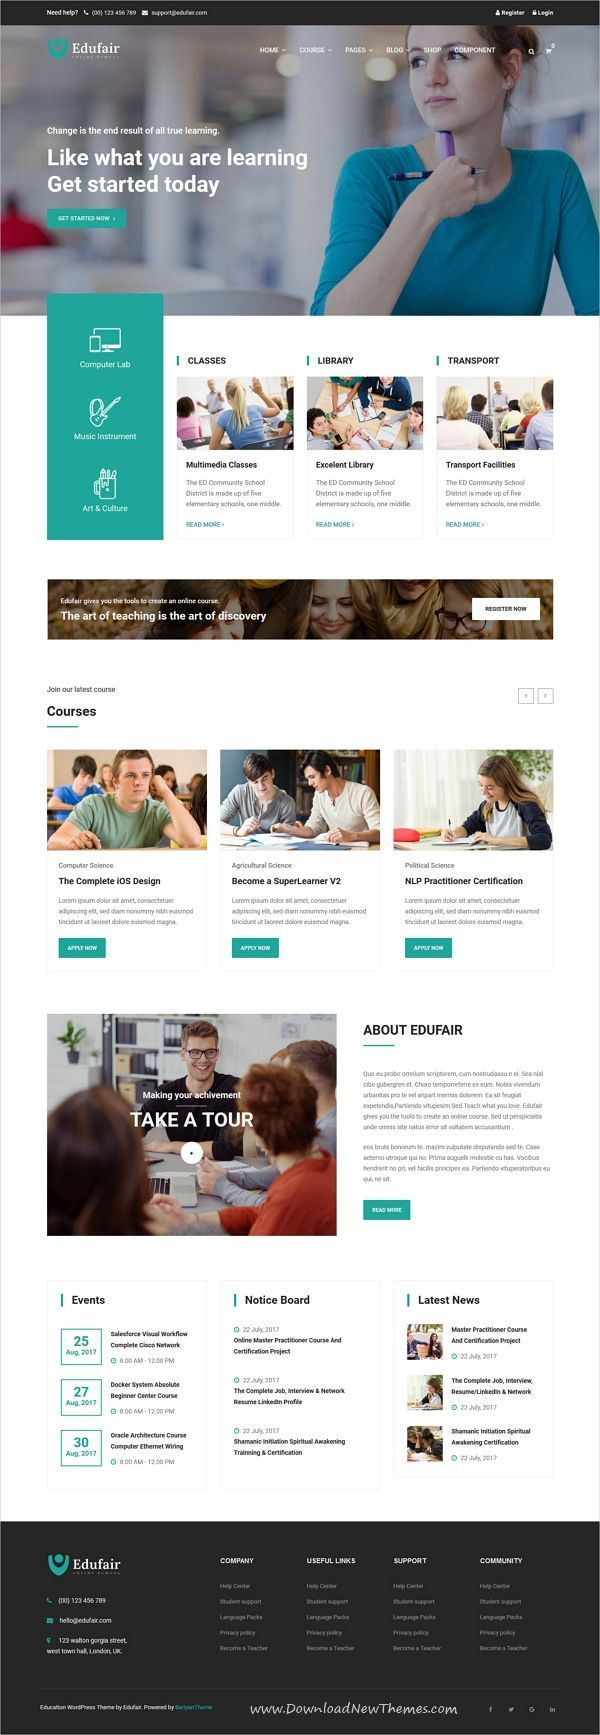 Edufair is clear and trendy design 6in1 responsive bootstrap HTML5 #template for…